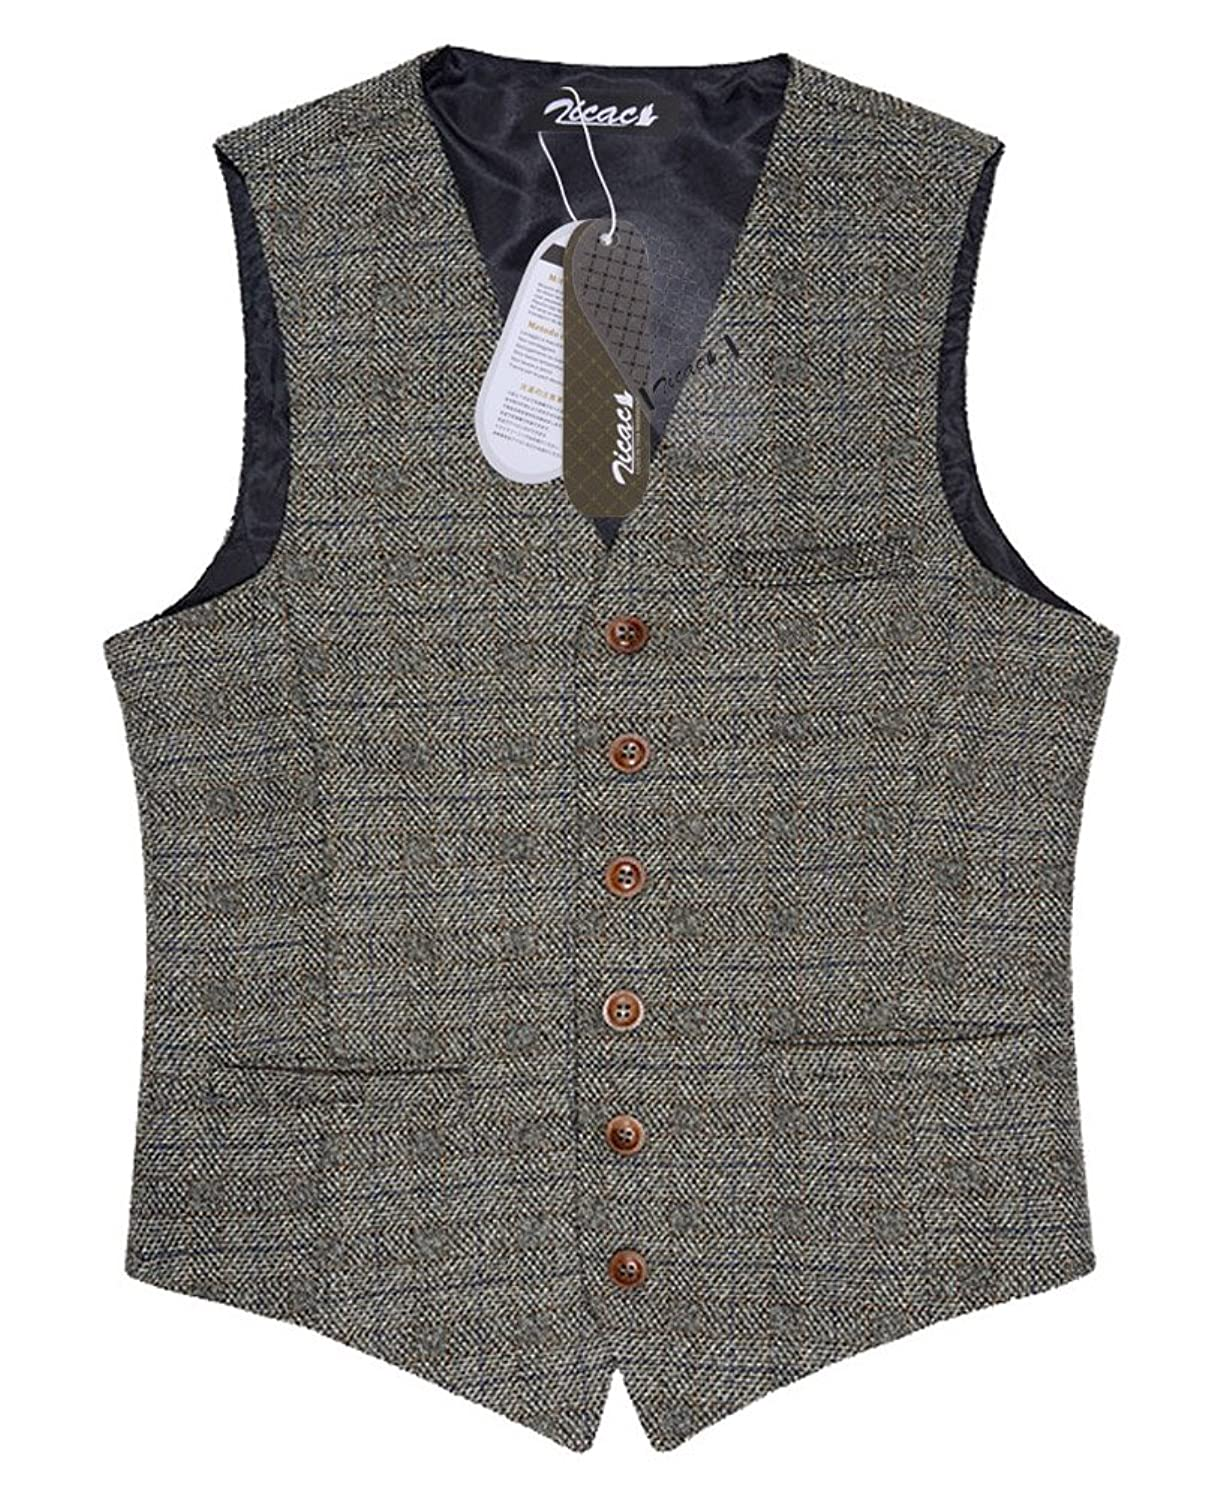 Men's Vintage Inspired Vests Zicac Mens Unique Advanced Custom Vest Skinny Wedding Dress Waistcoat $36.99 AT vintagedancer.com